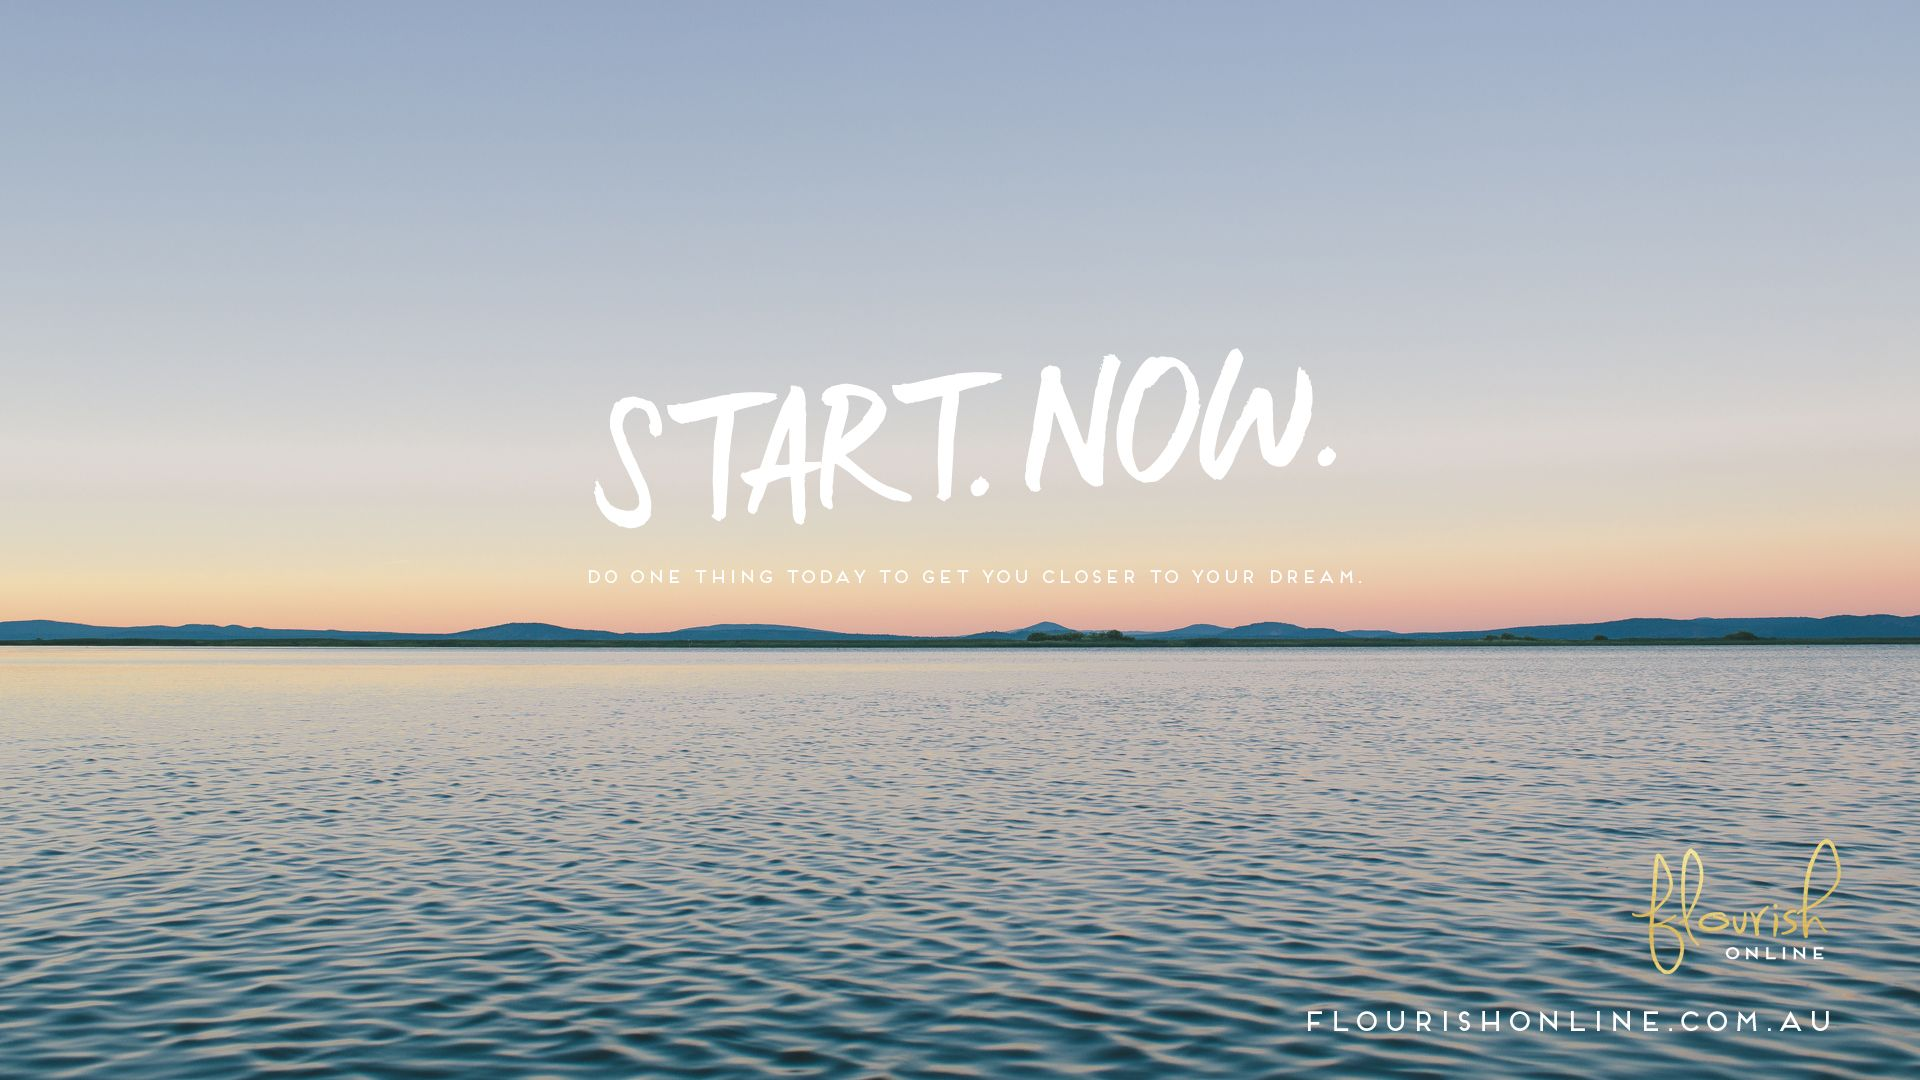 Start Now Ocean Sea View Desktop Wallpaper Background Inspirational Desktop Wallpaper Computer Wallpaper Desktop Wallpapers Free Wallpaper Backgrounds